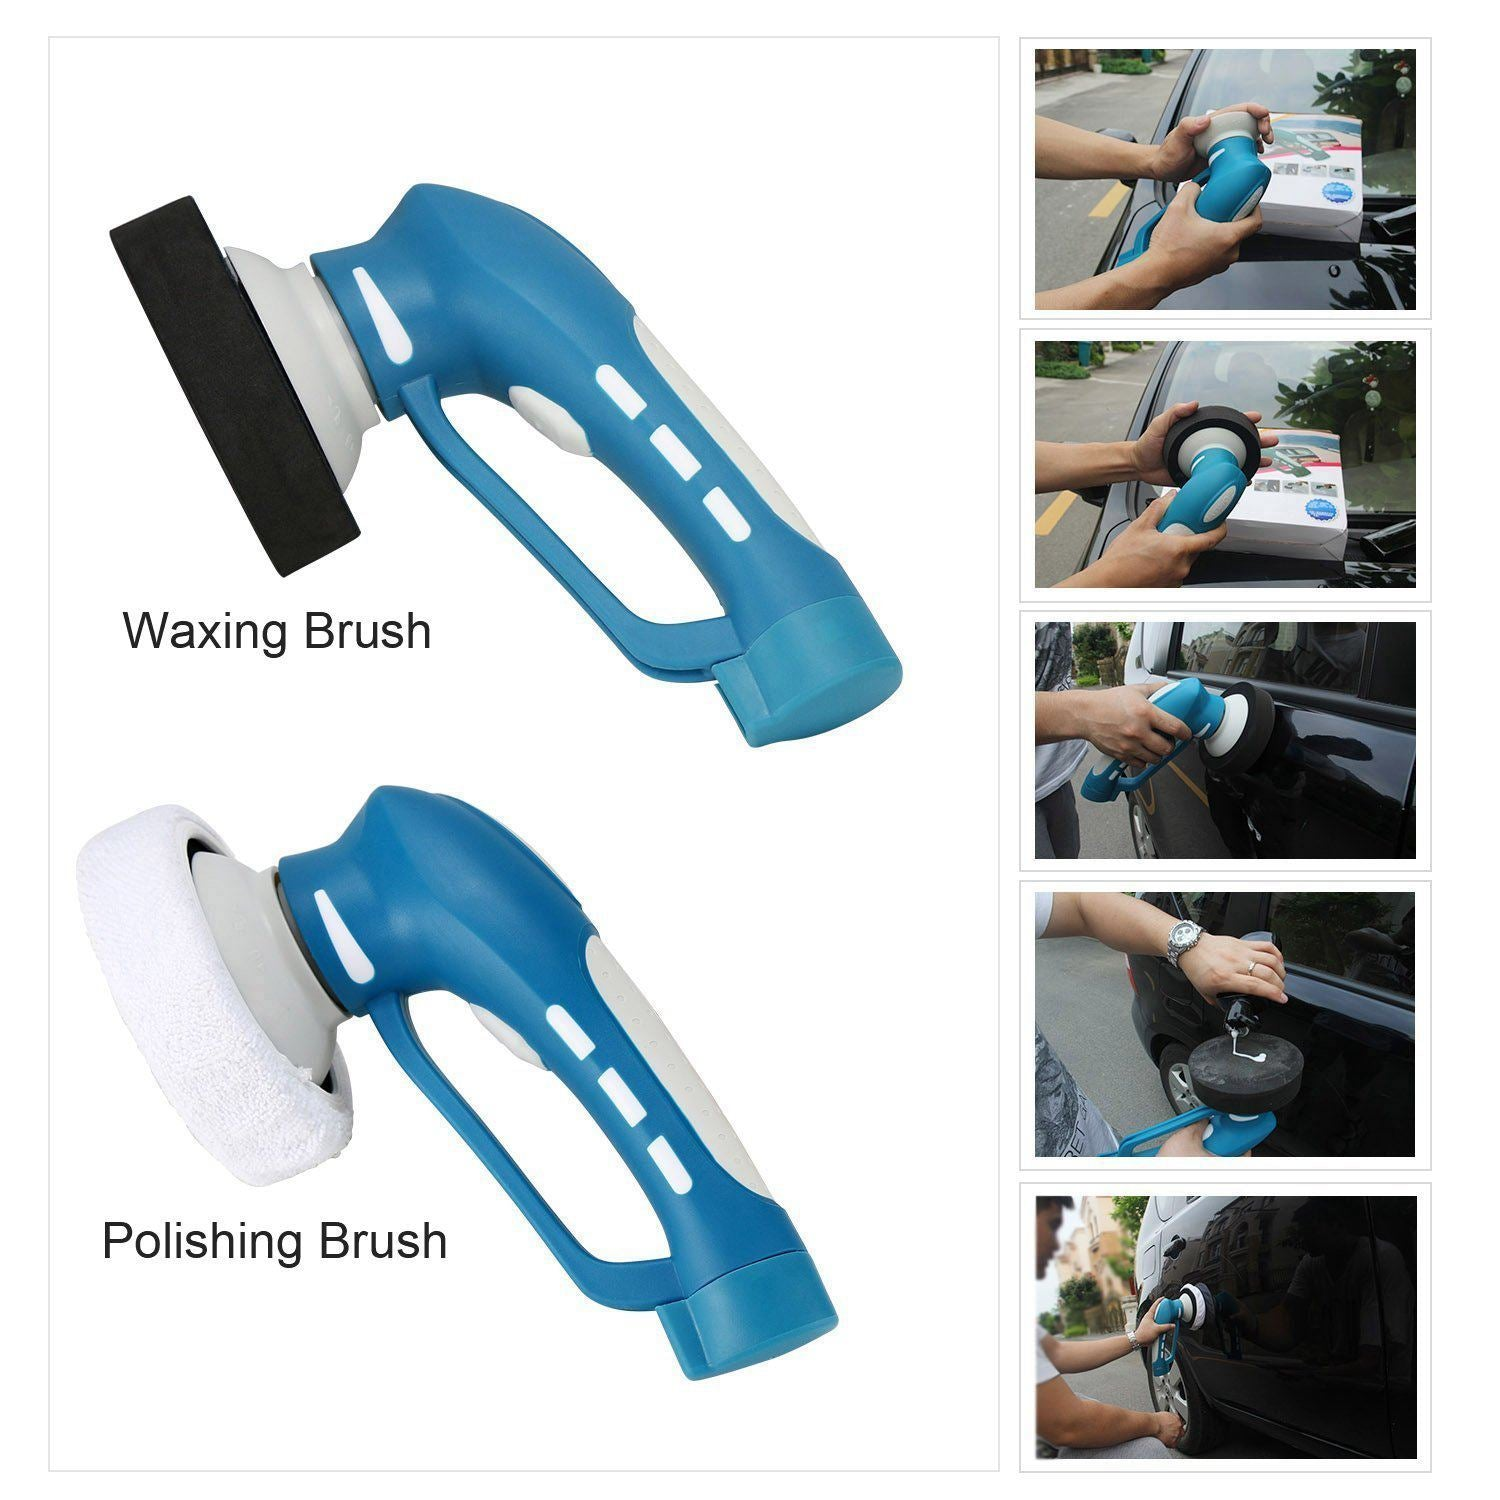 Cordless Electric Car Polisher - Complete Set of Three